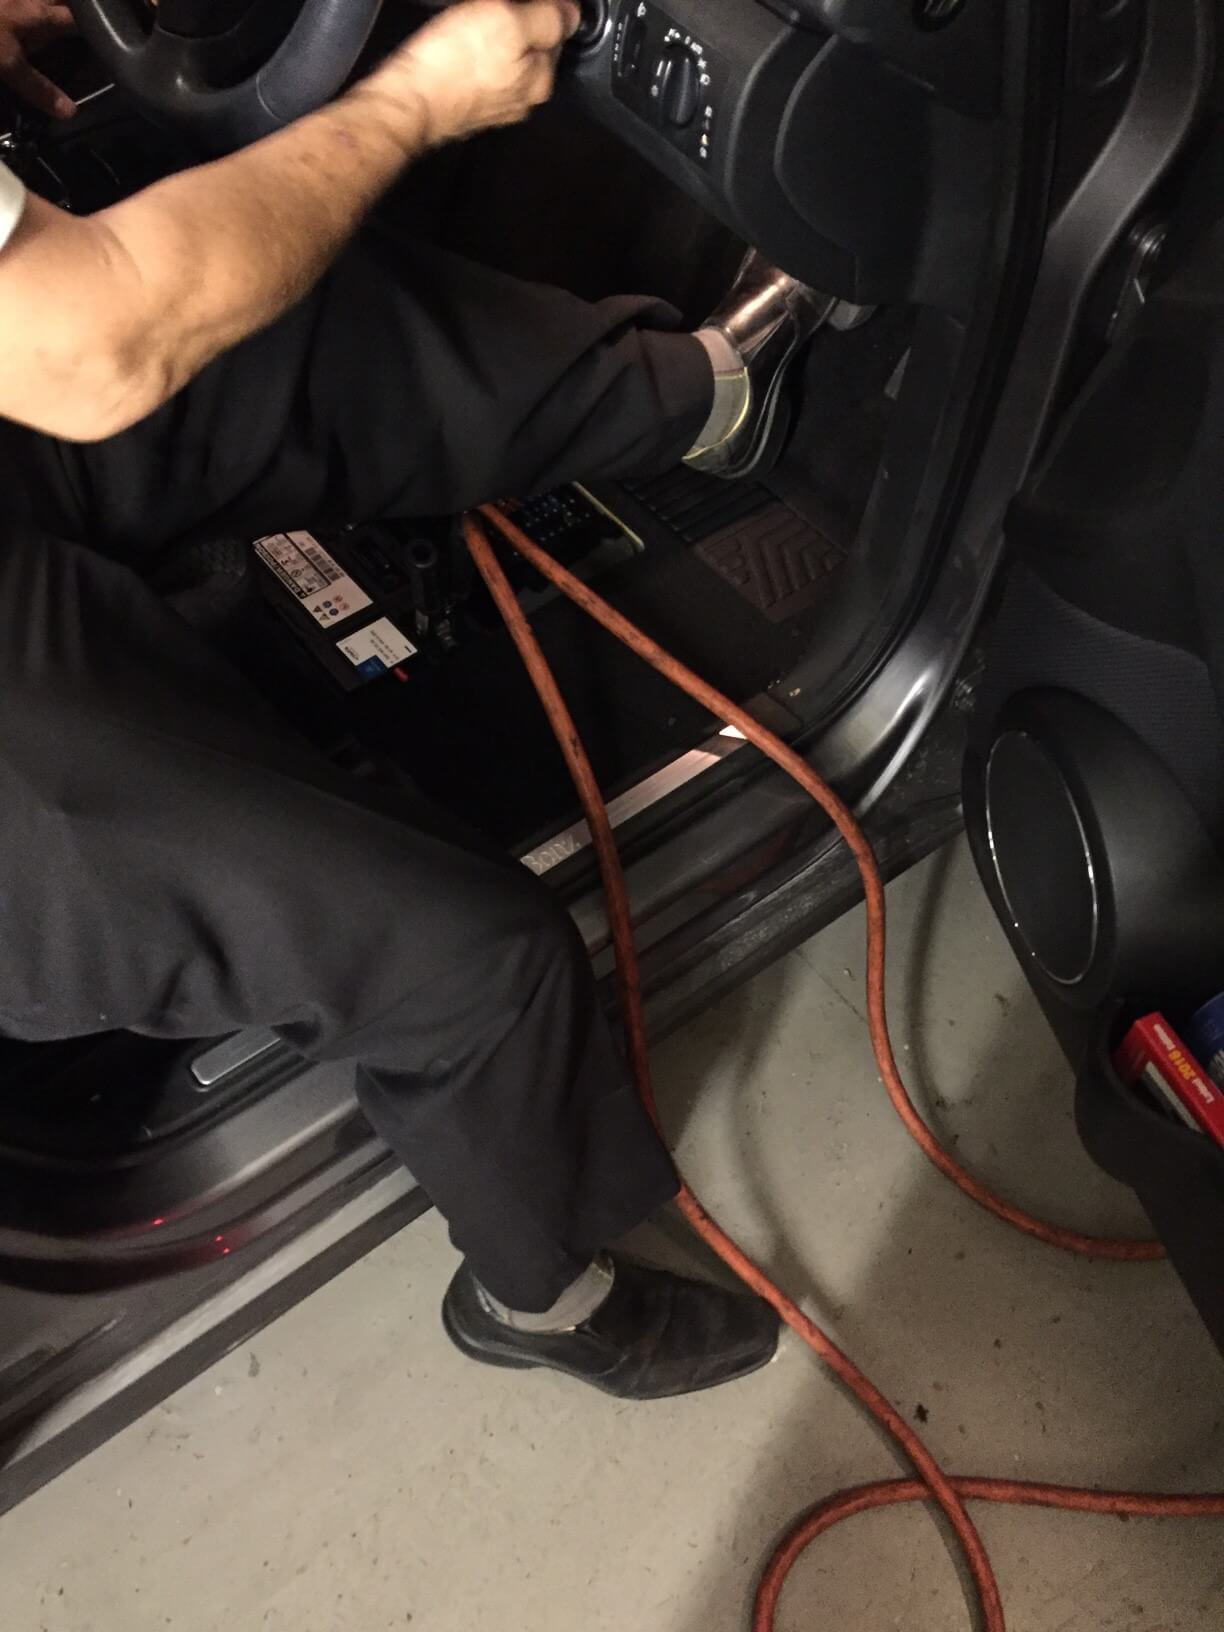 External battery is connected to the terminals of the in-car battery